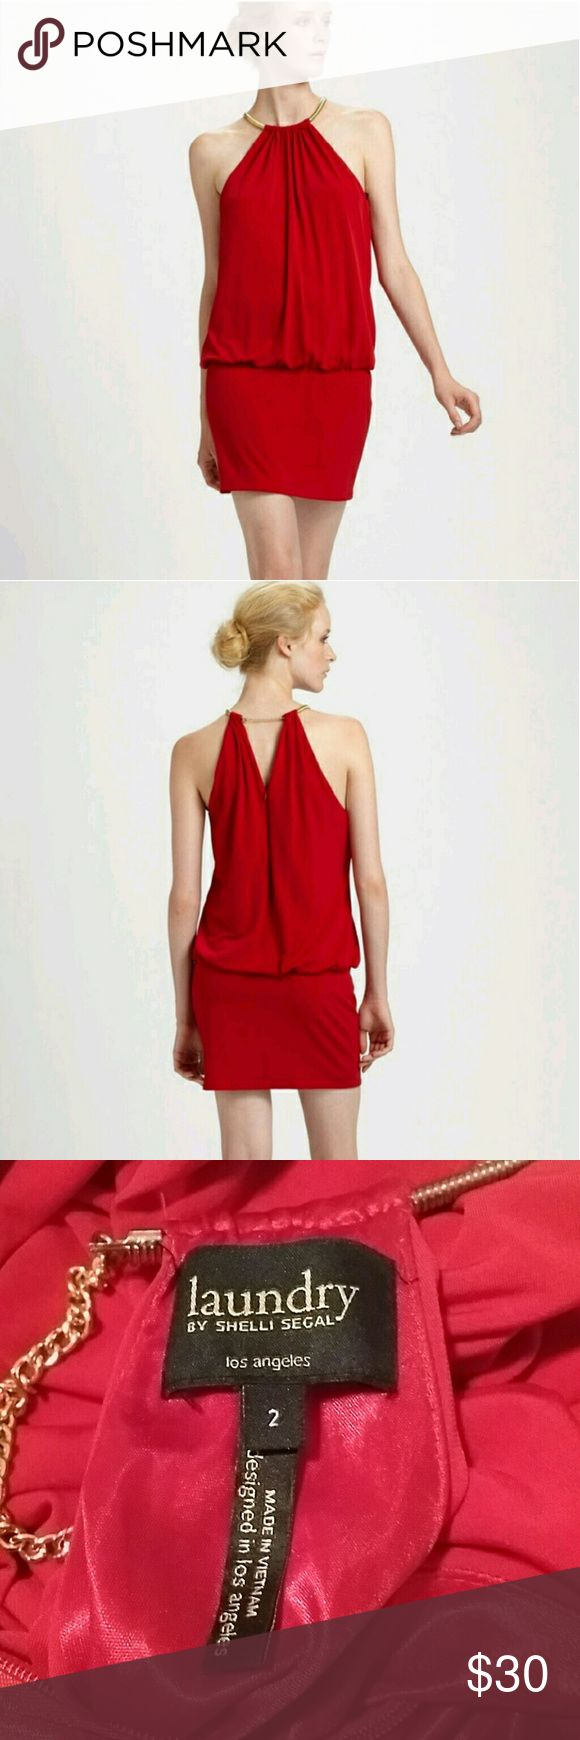 Laundry by shelli segal red mini dress Slinky size 2 lipstick red mini dress with a gold ring collar. In excellent condition. Laundry by Shelli Segal Dresses Mini